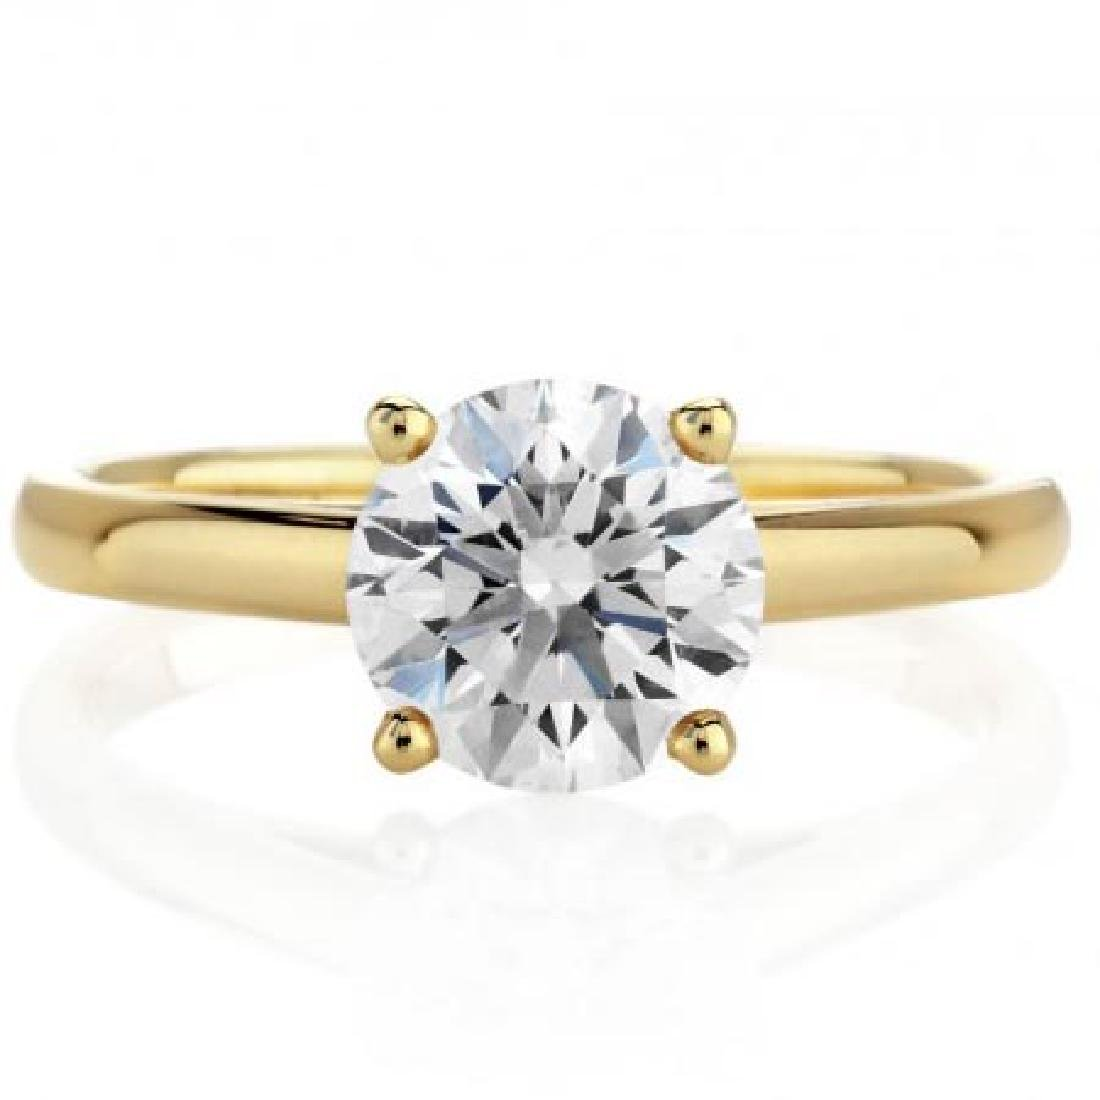 CERTIFIED 1 CTW ROUND E/VS2 SOLITAIRE RING IN 14K YELLO